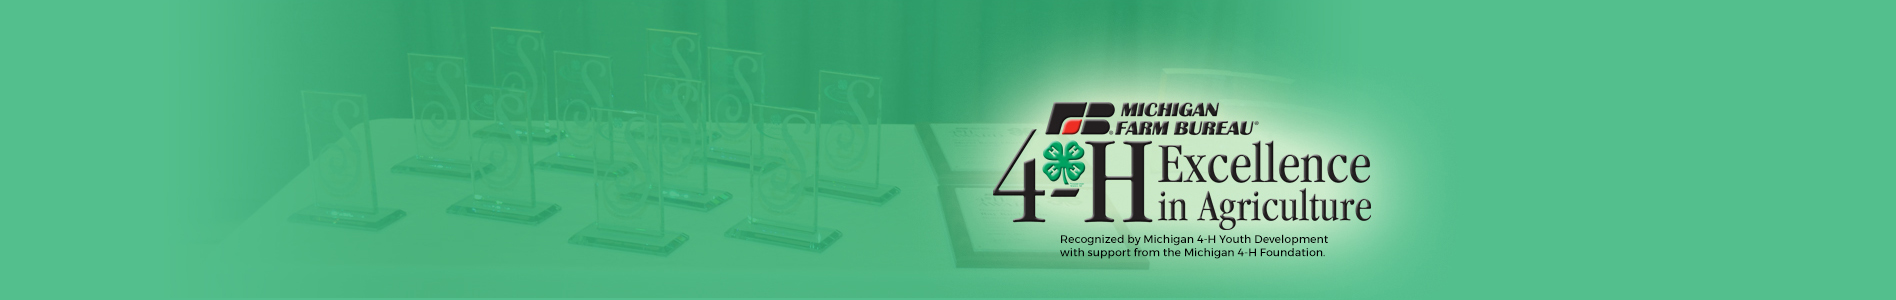 MFB 4-H Excellence in Agriculture Awards